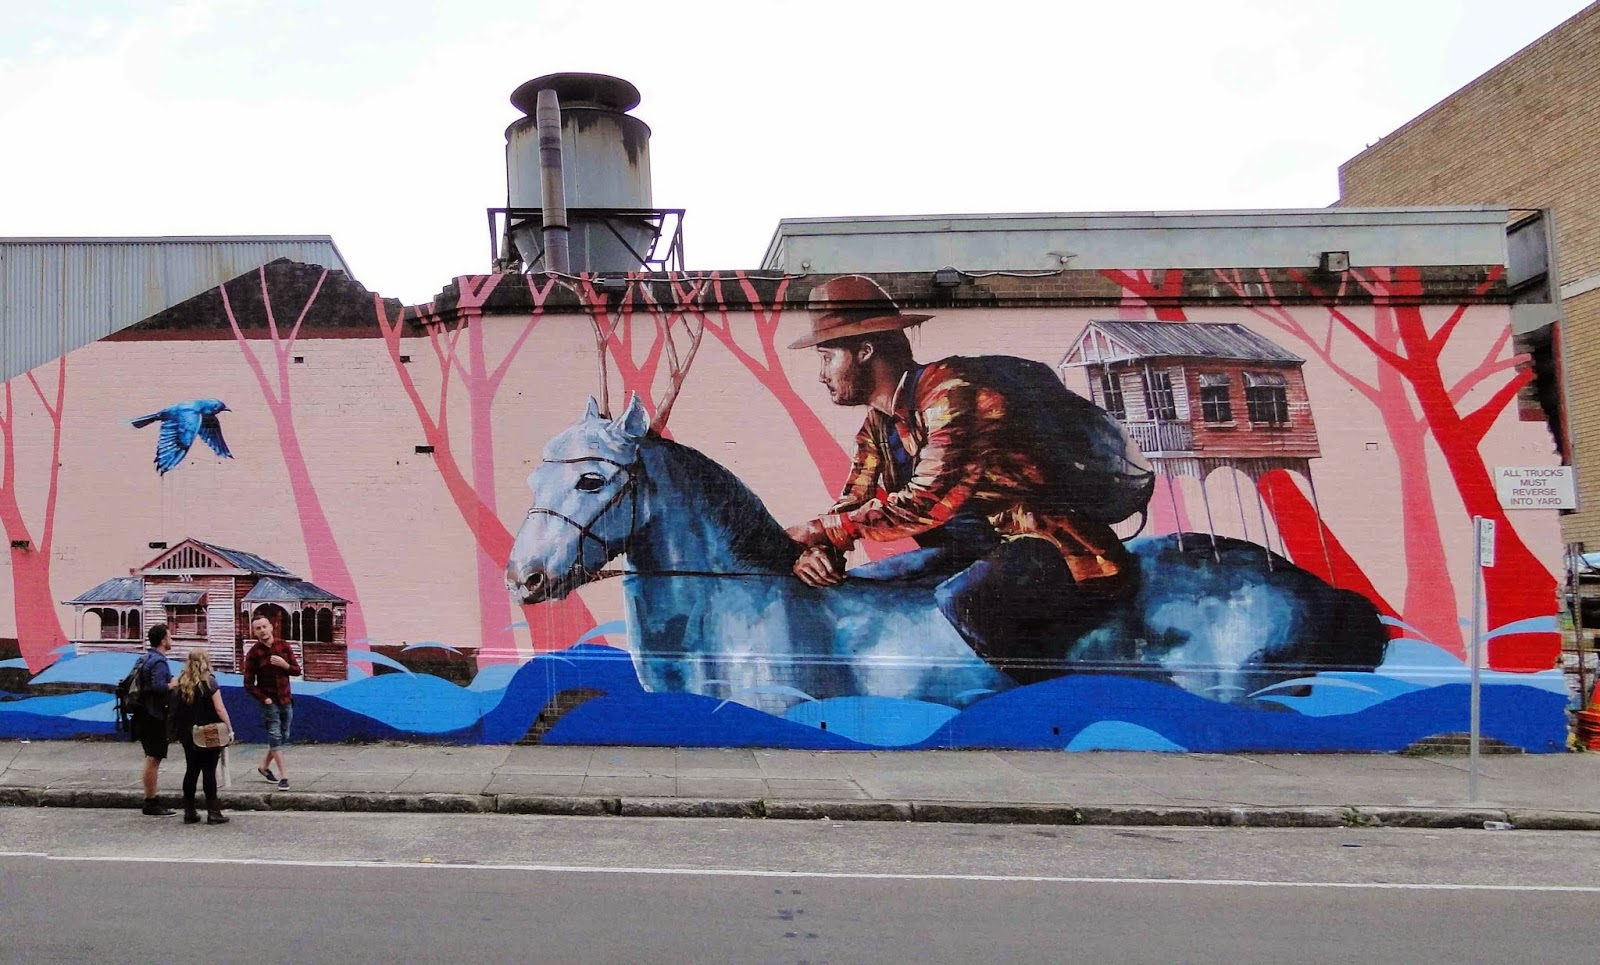 Fintan Magee just finished working on yet another massive mural somewhere in Marrickville, Sydney, Australia.